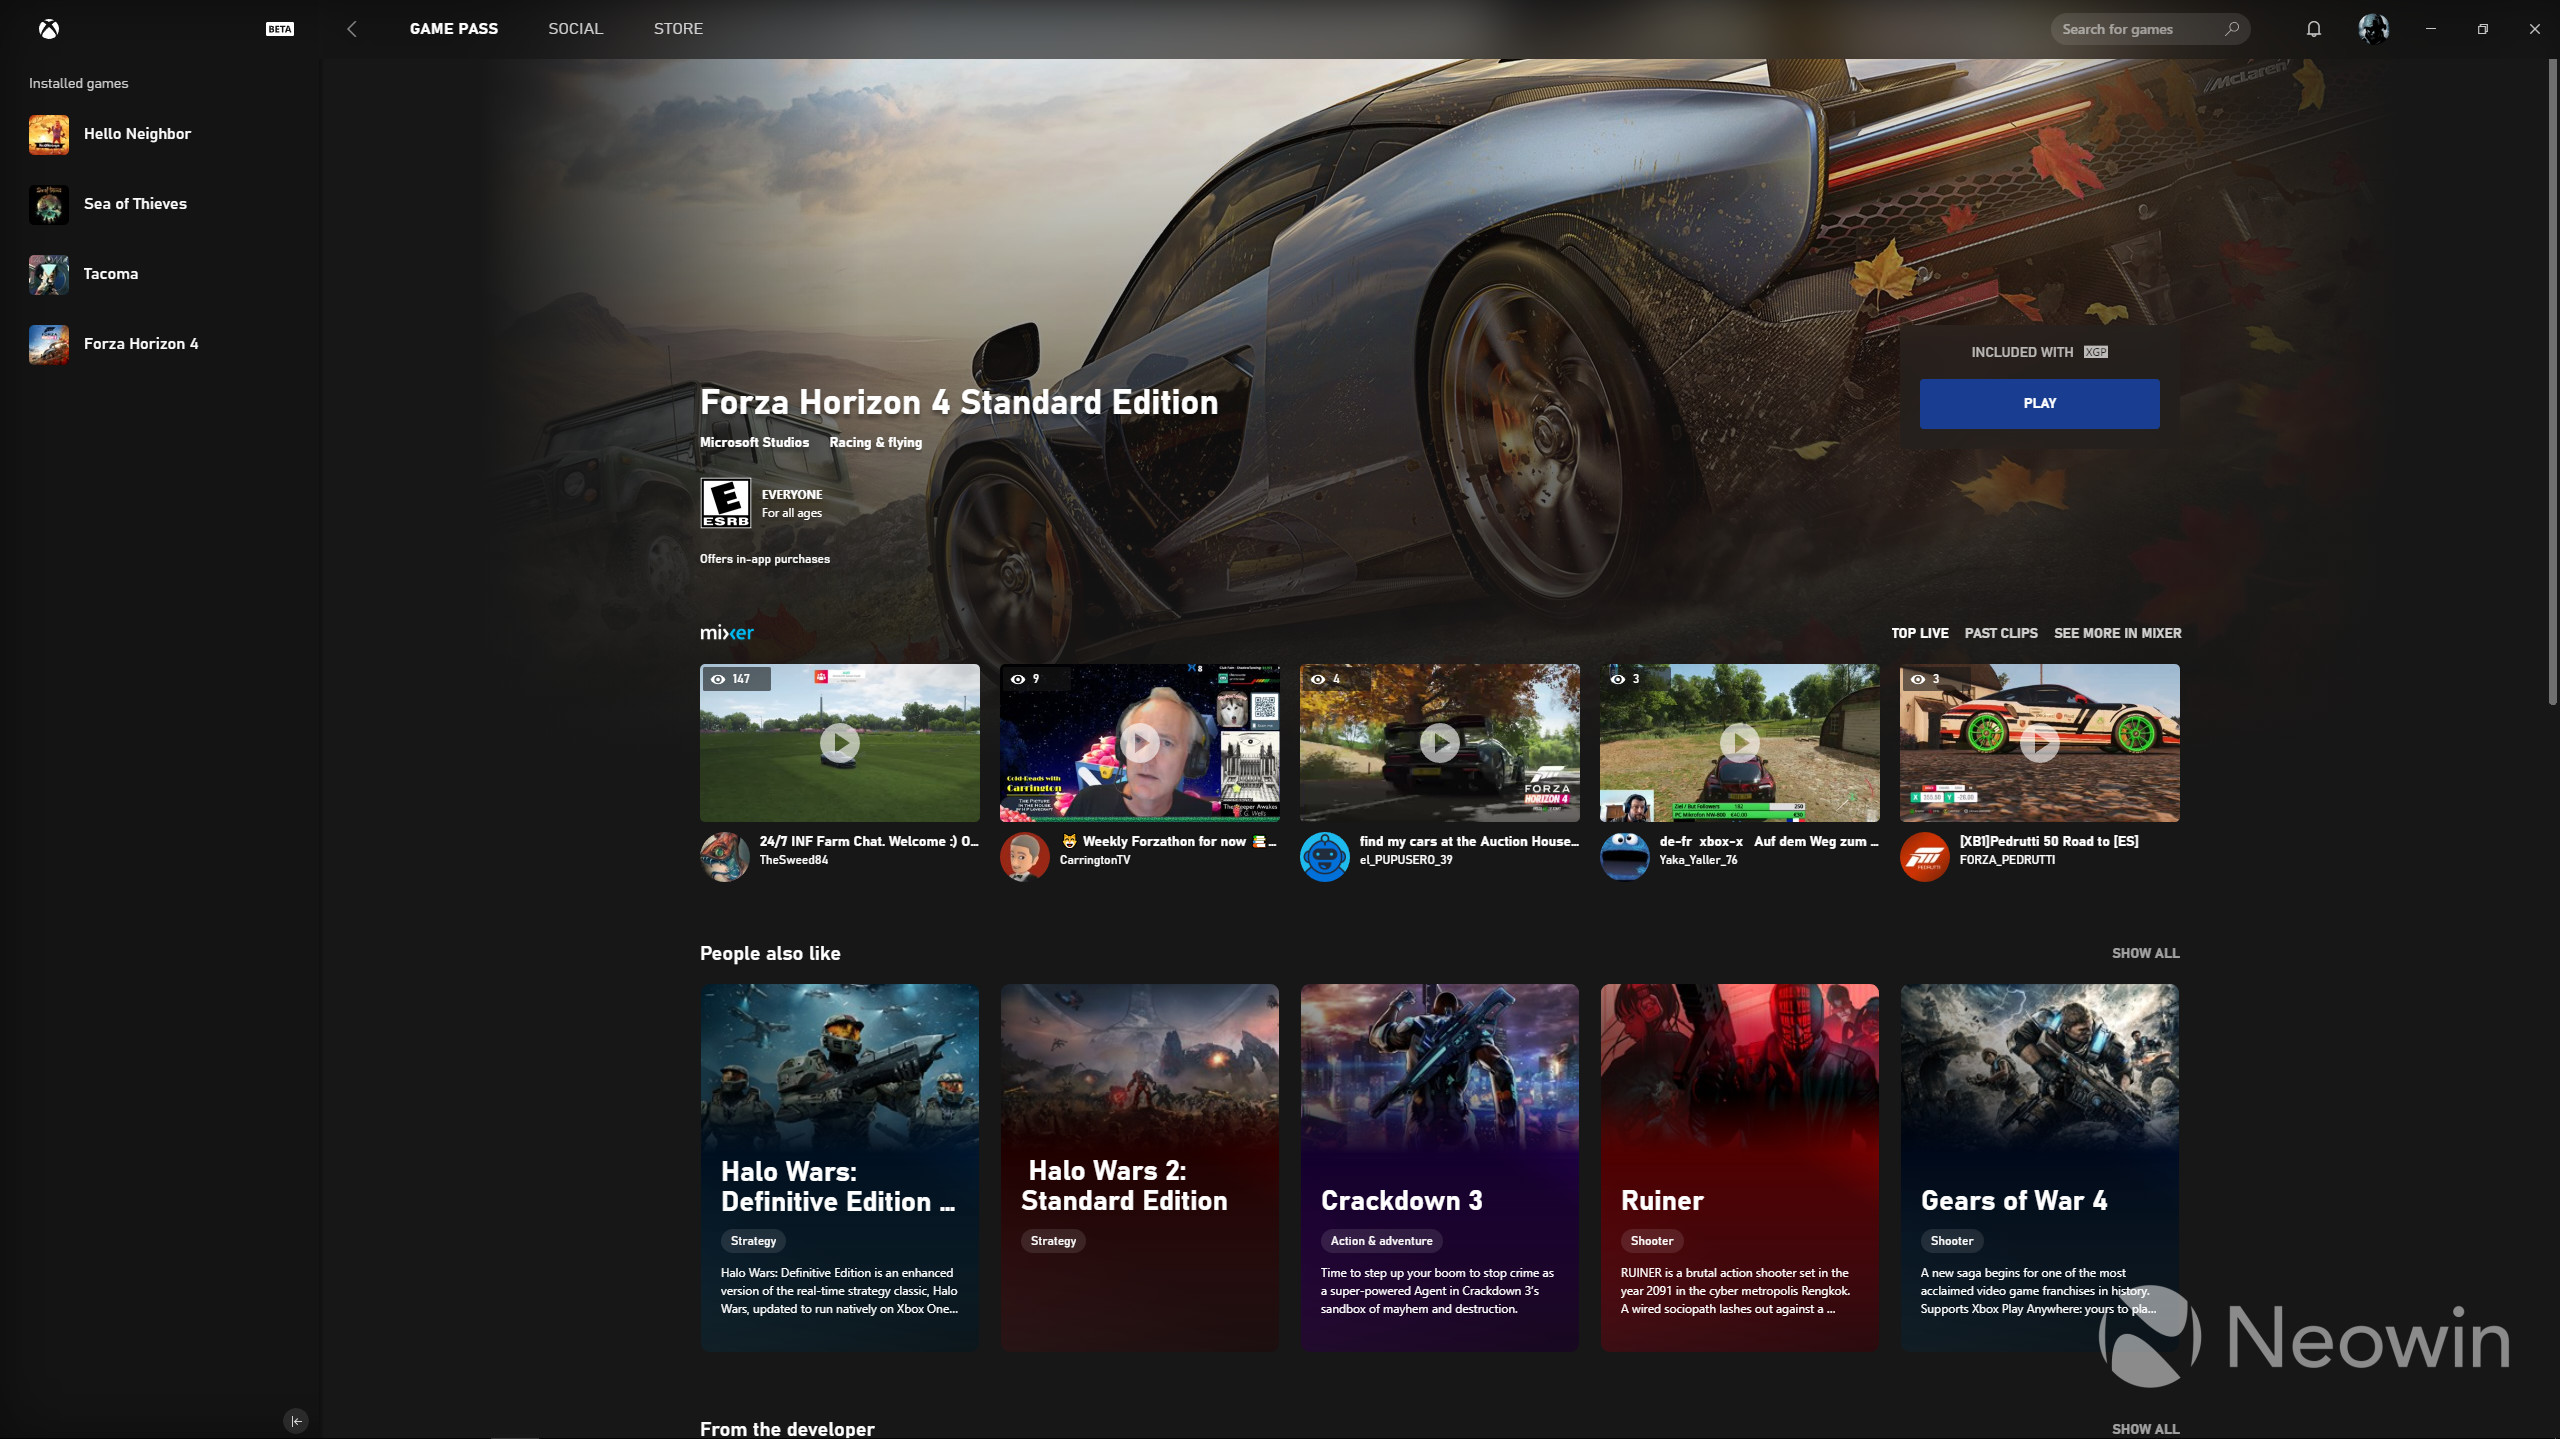 New Xbox app for PC surfaces, combines Xbox Game Pass